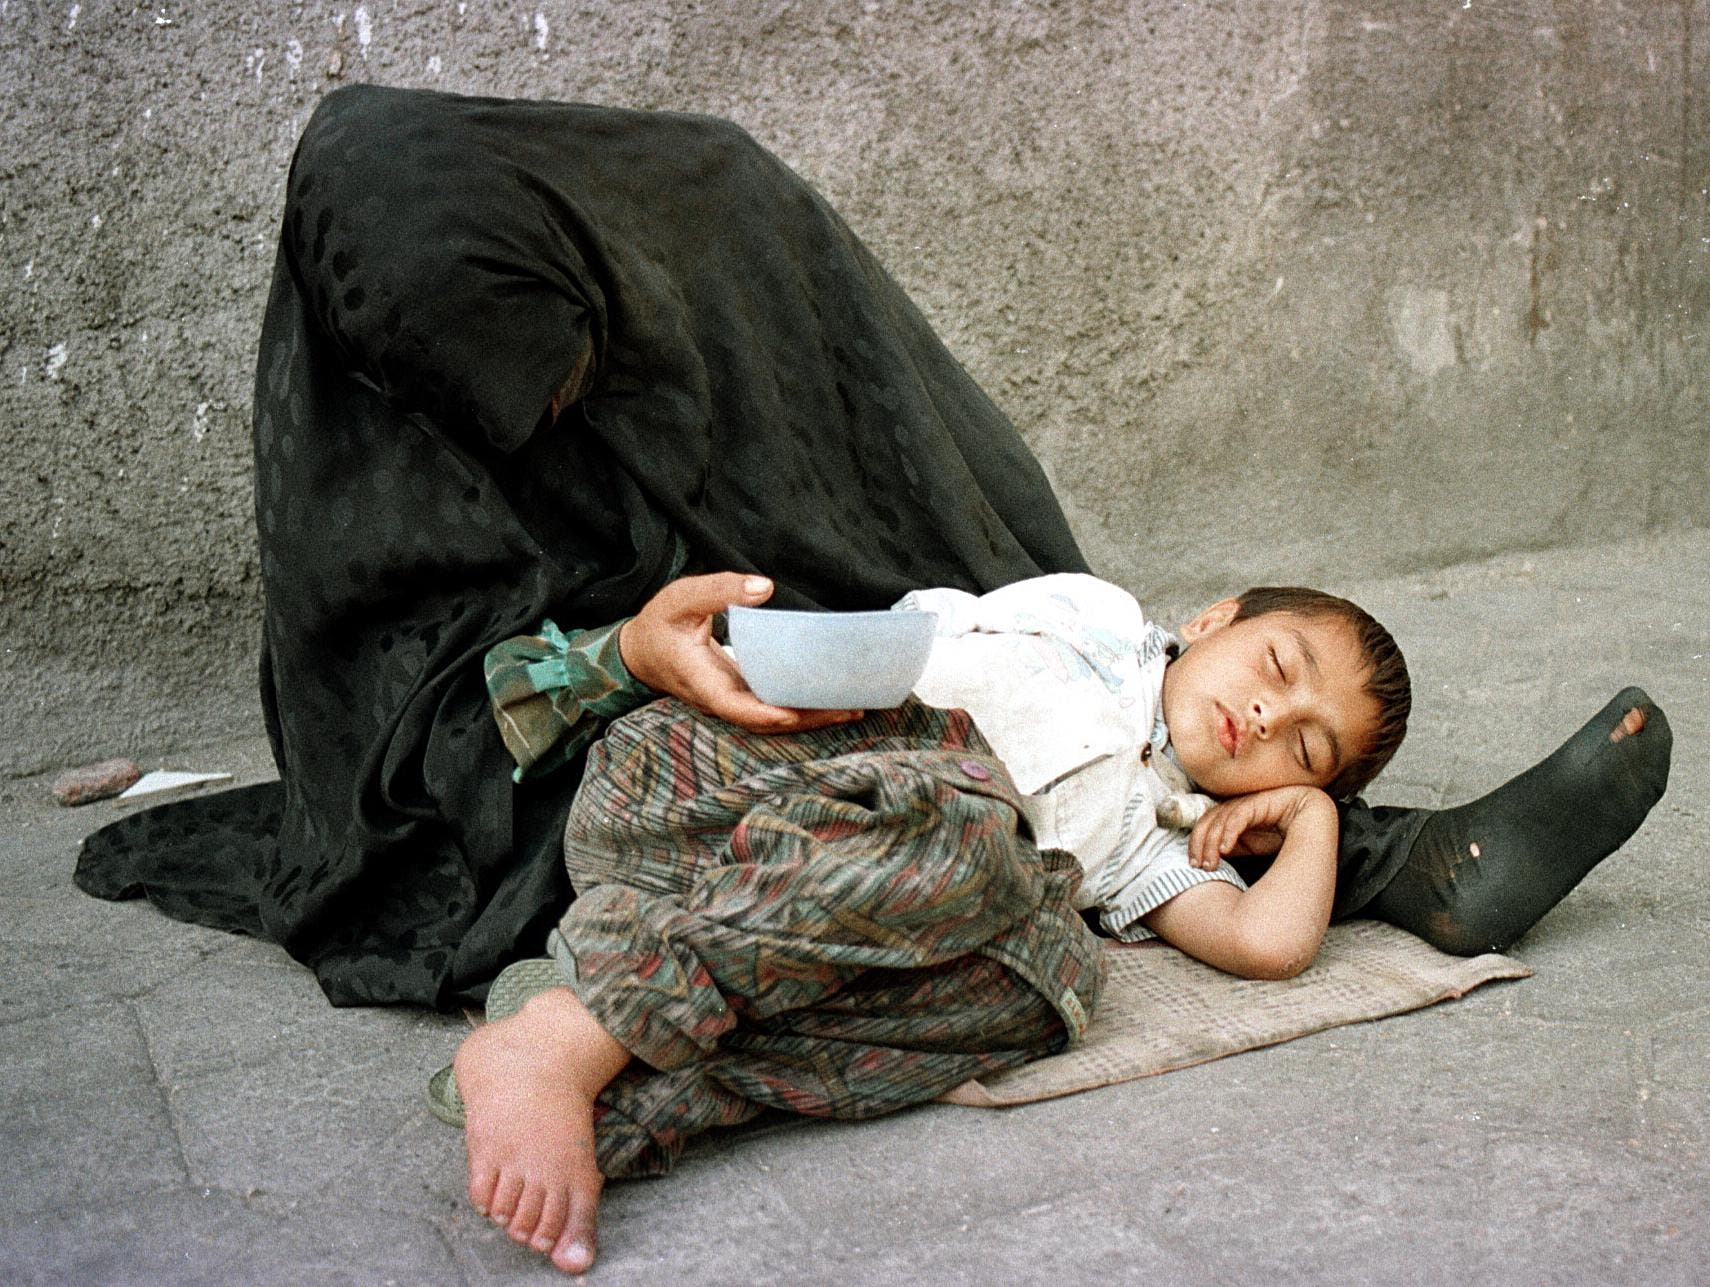 A homeless woman and her child beg for money 22 May 1999 in Tehran. (AFP)